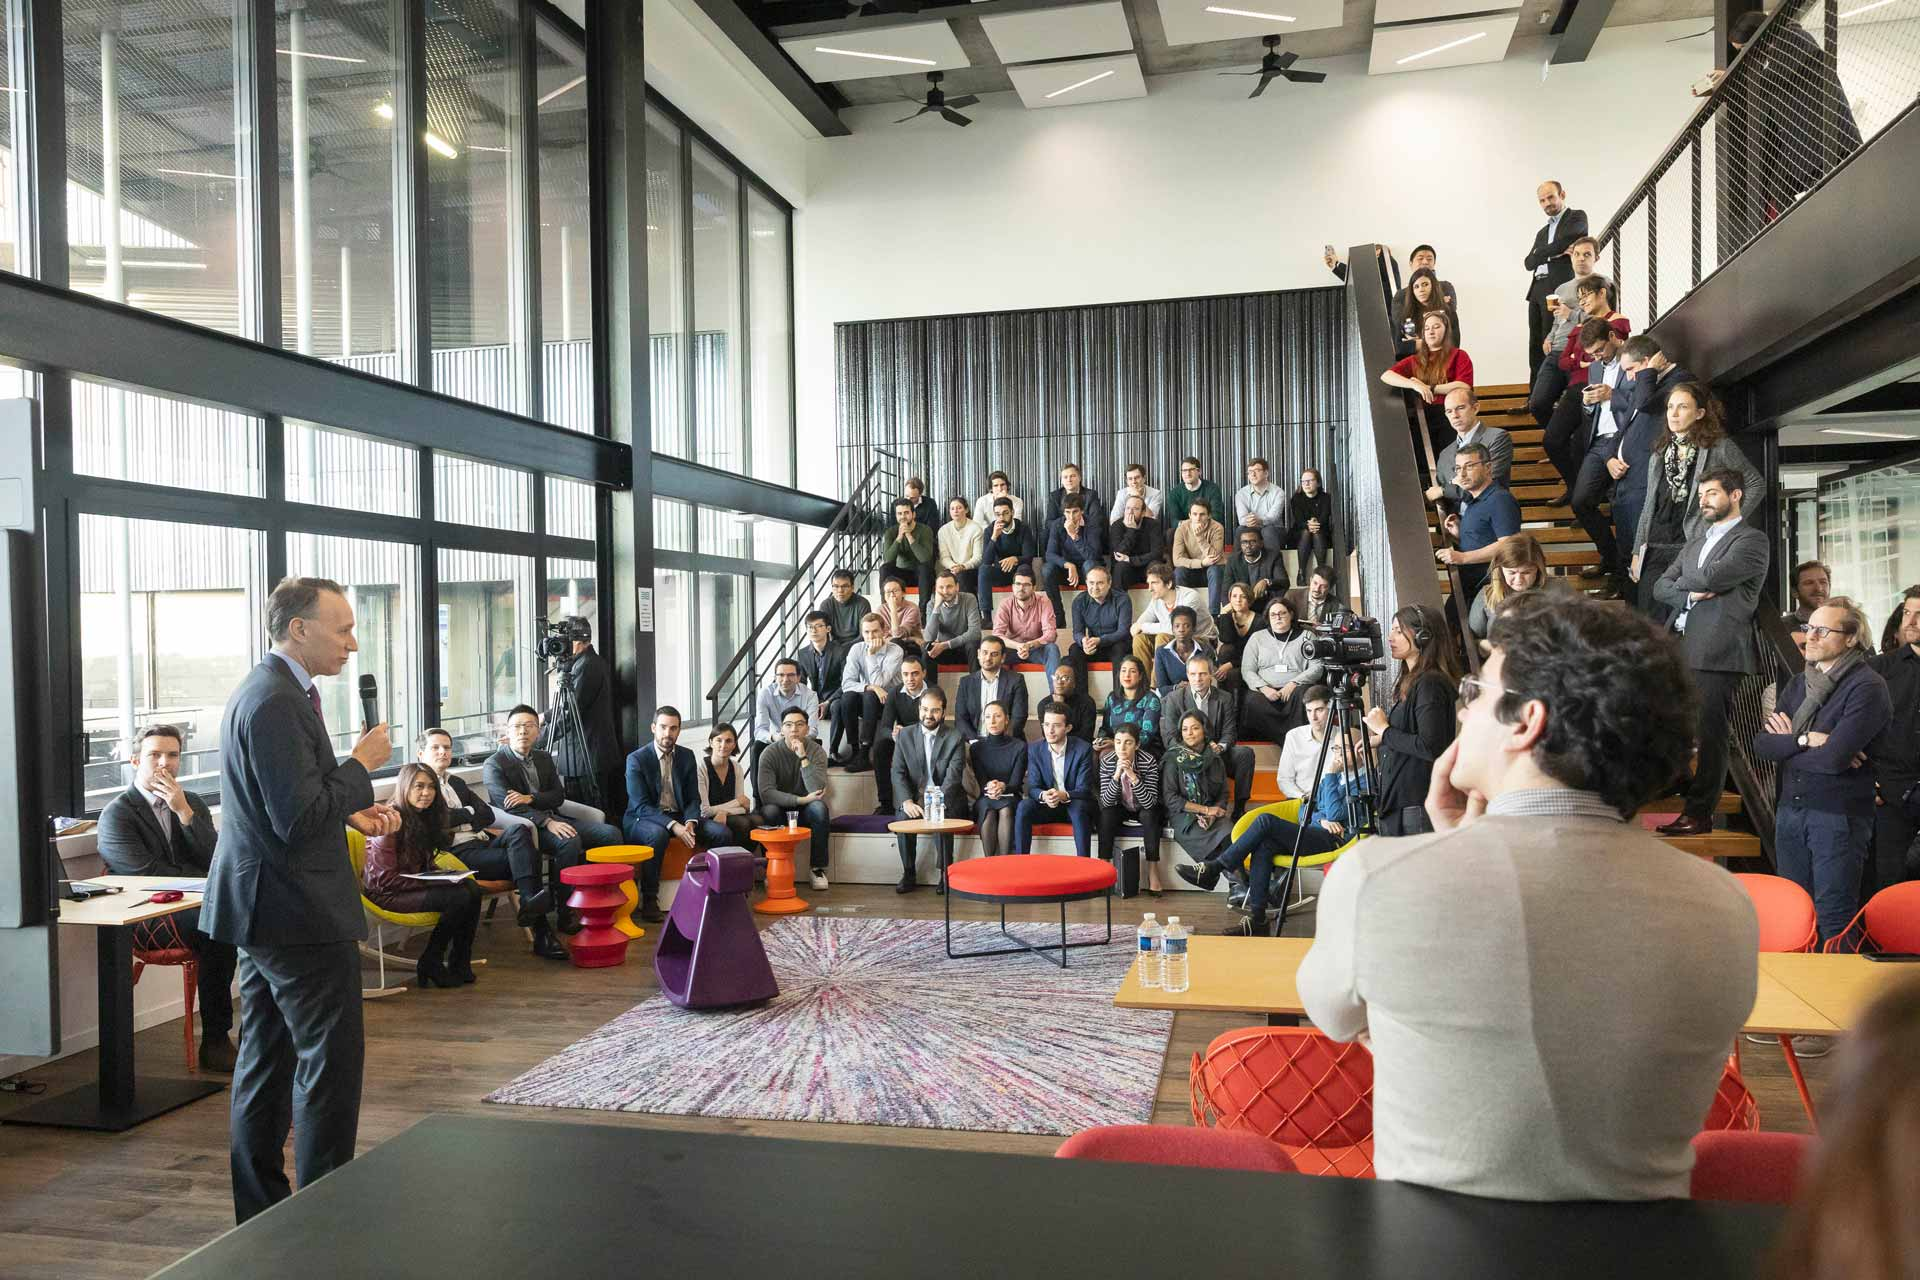 In the heart of Paris, AXA inaugurates global innovation